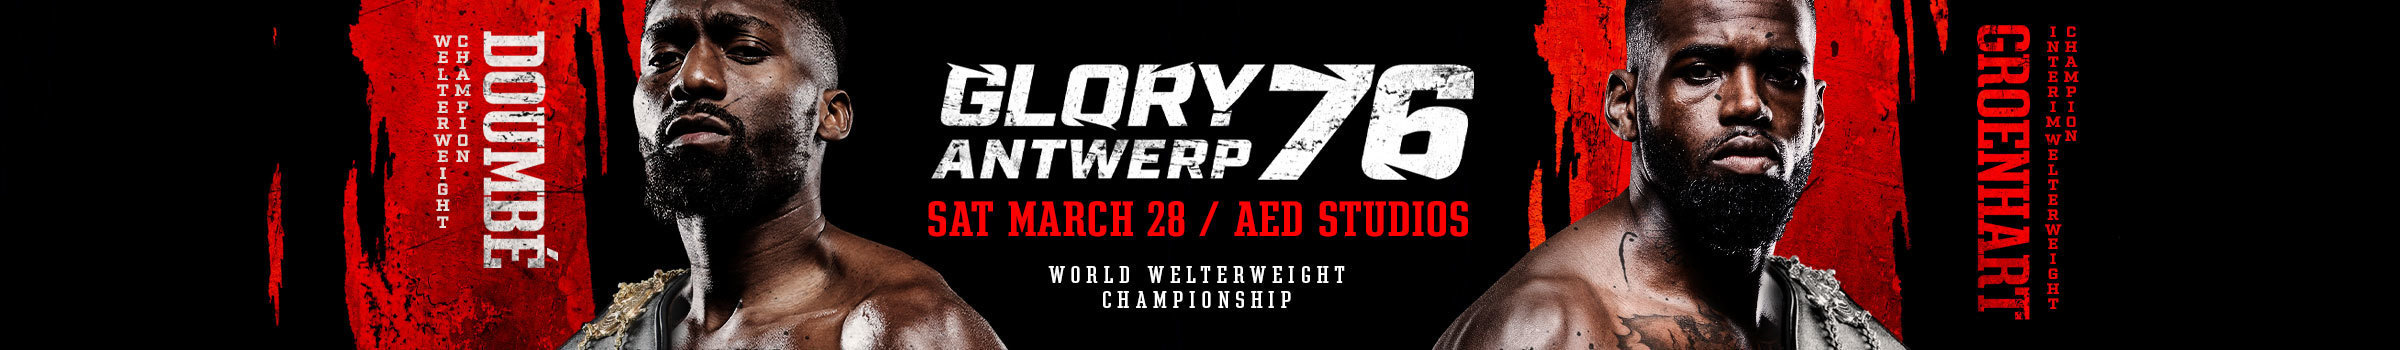 GLORY 76 ANTWERP